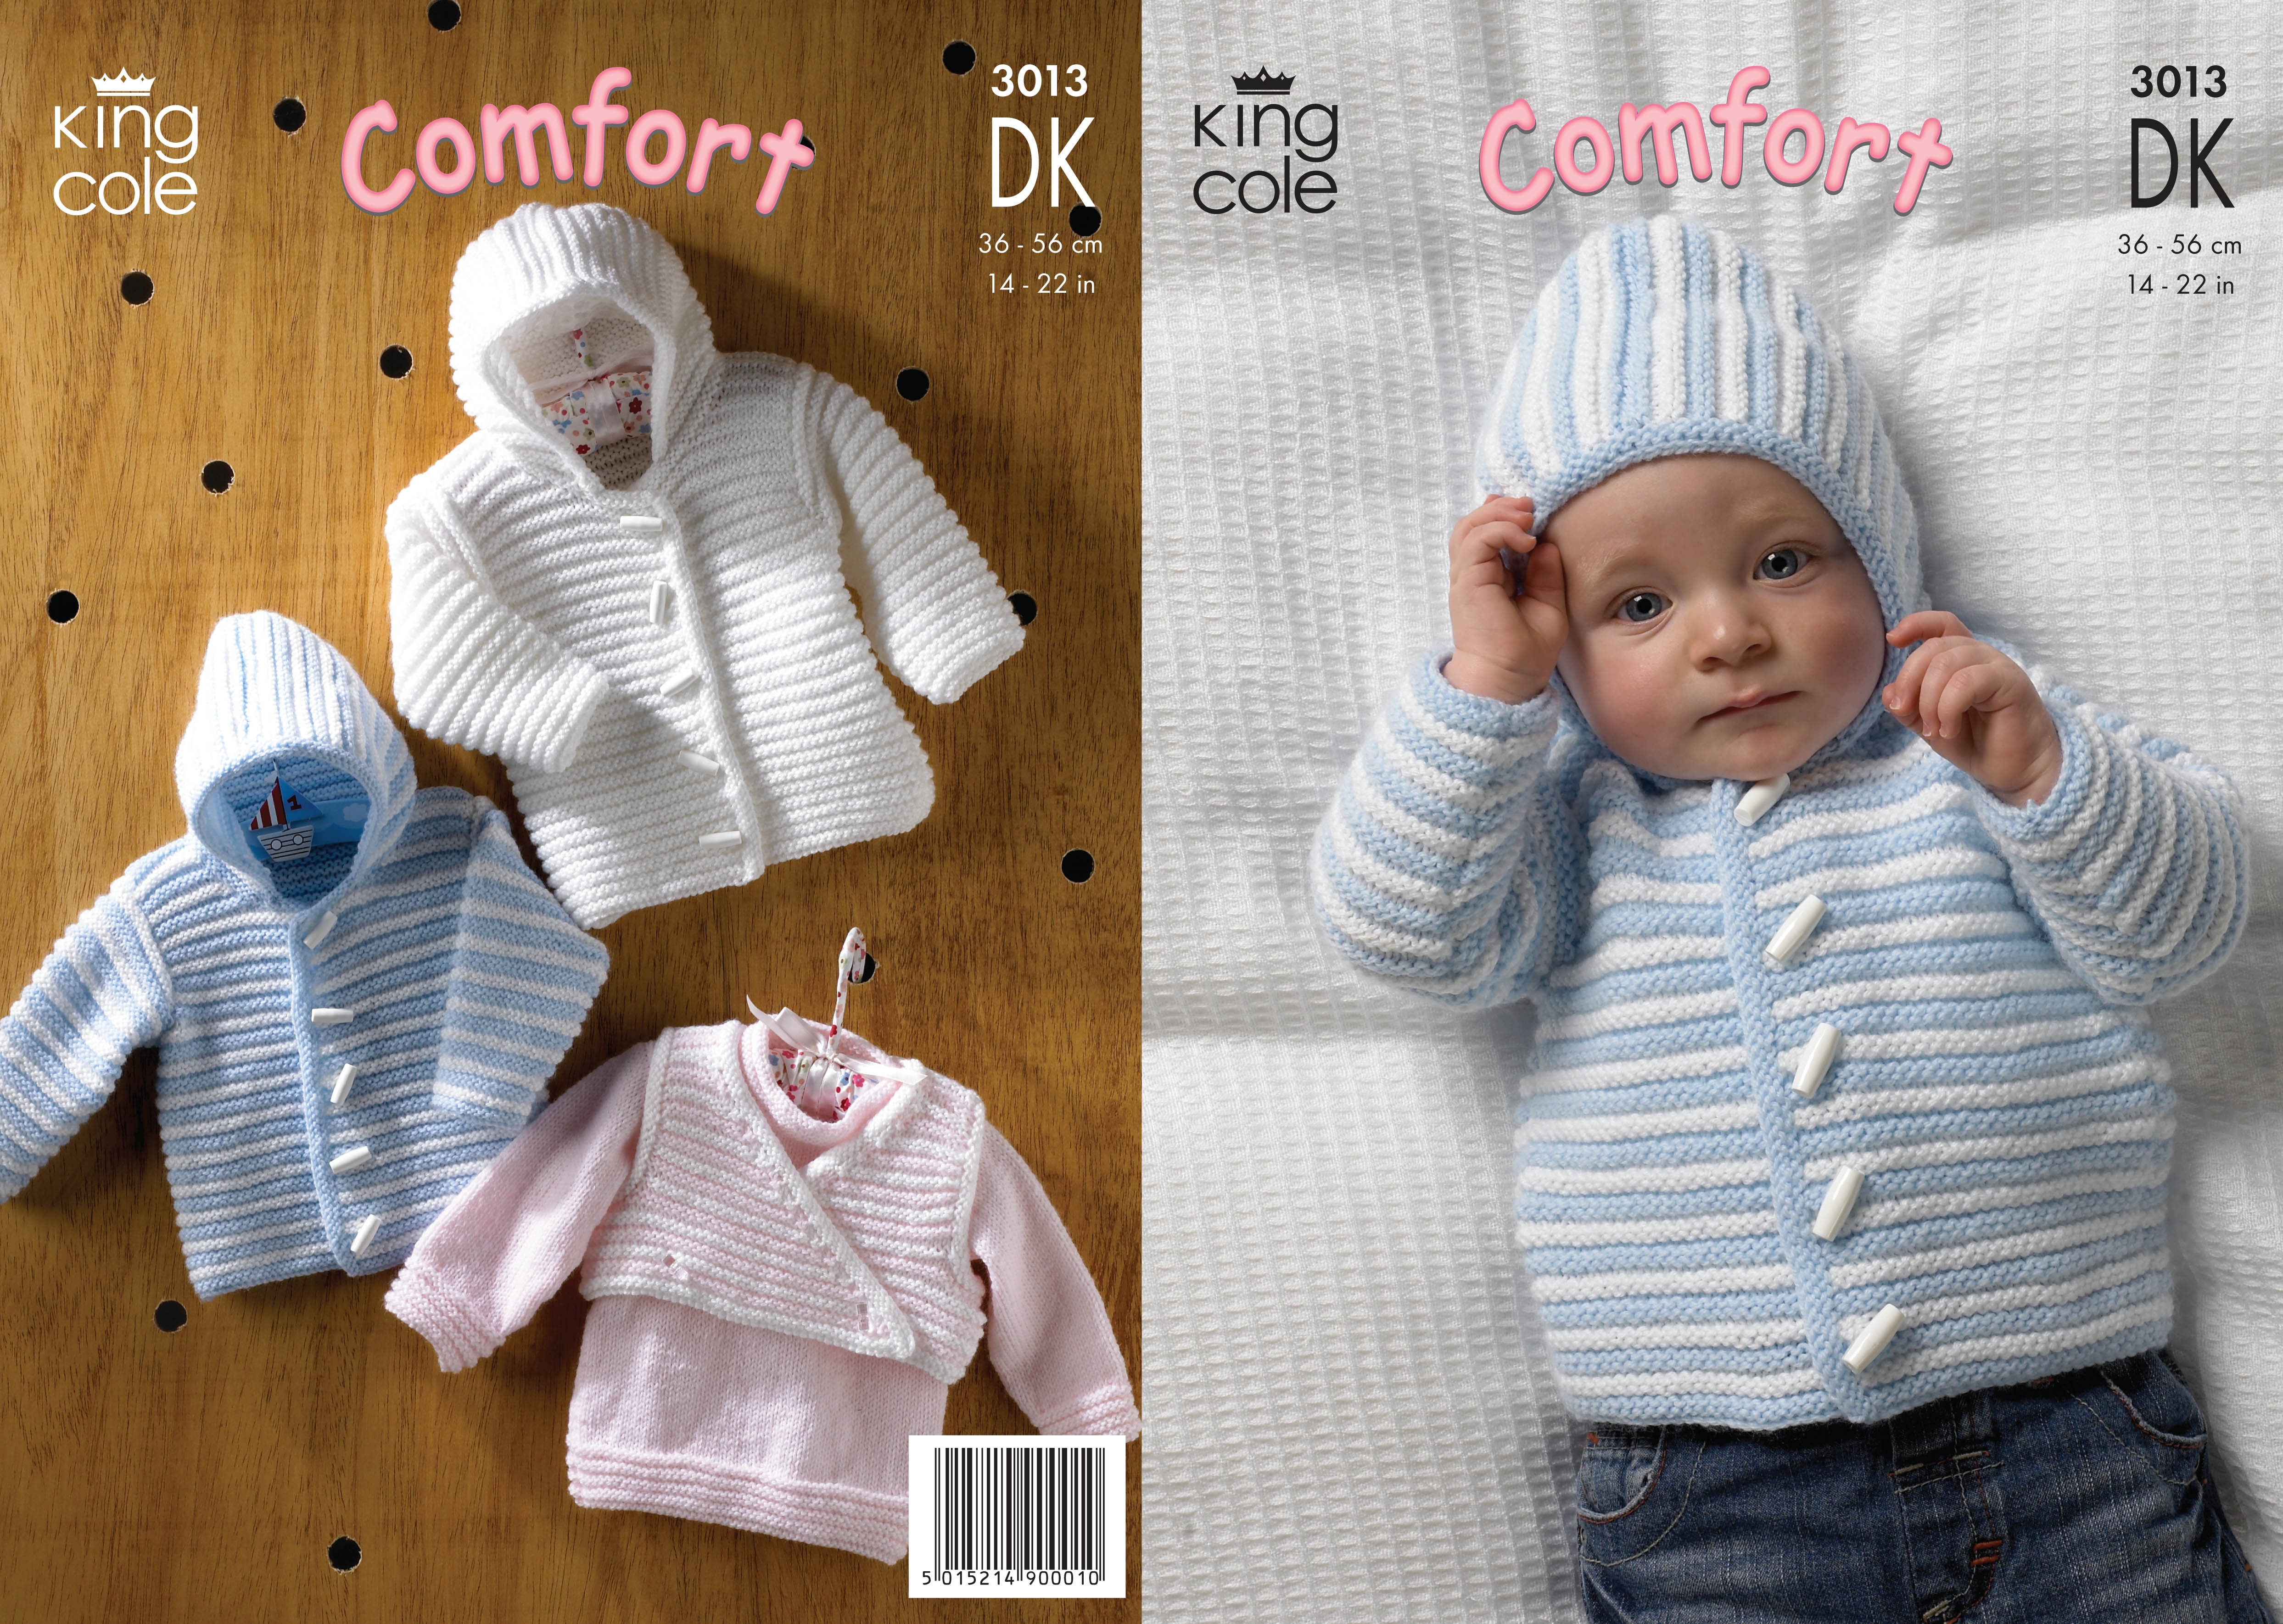 Free Double Knit Baby Cardigan Patterns Details About King Cole Double Knitting Dk Pattern Ba Sweater Hooded Jacket Body Warmer 3013